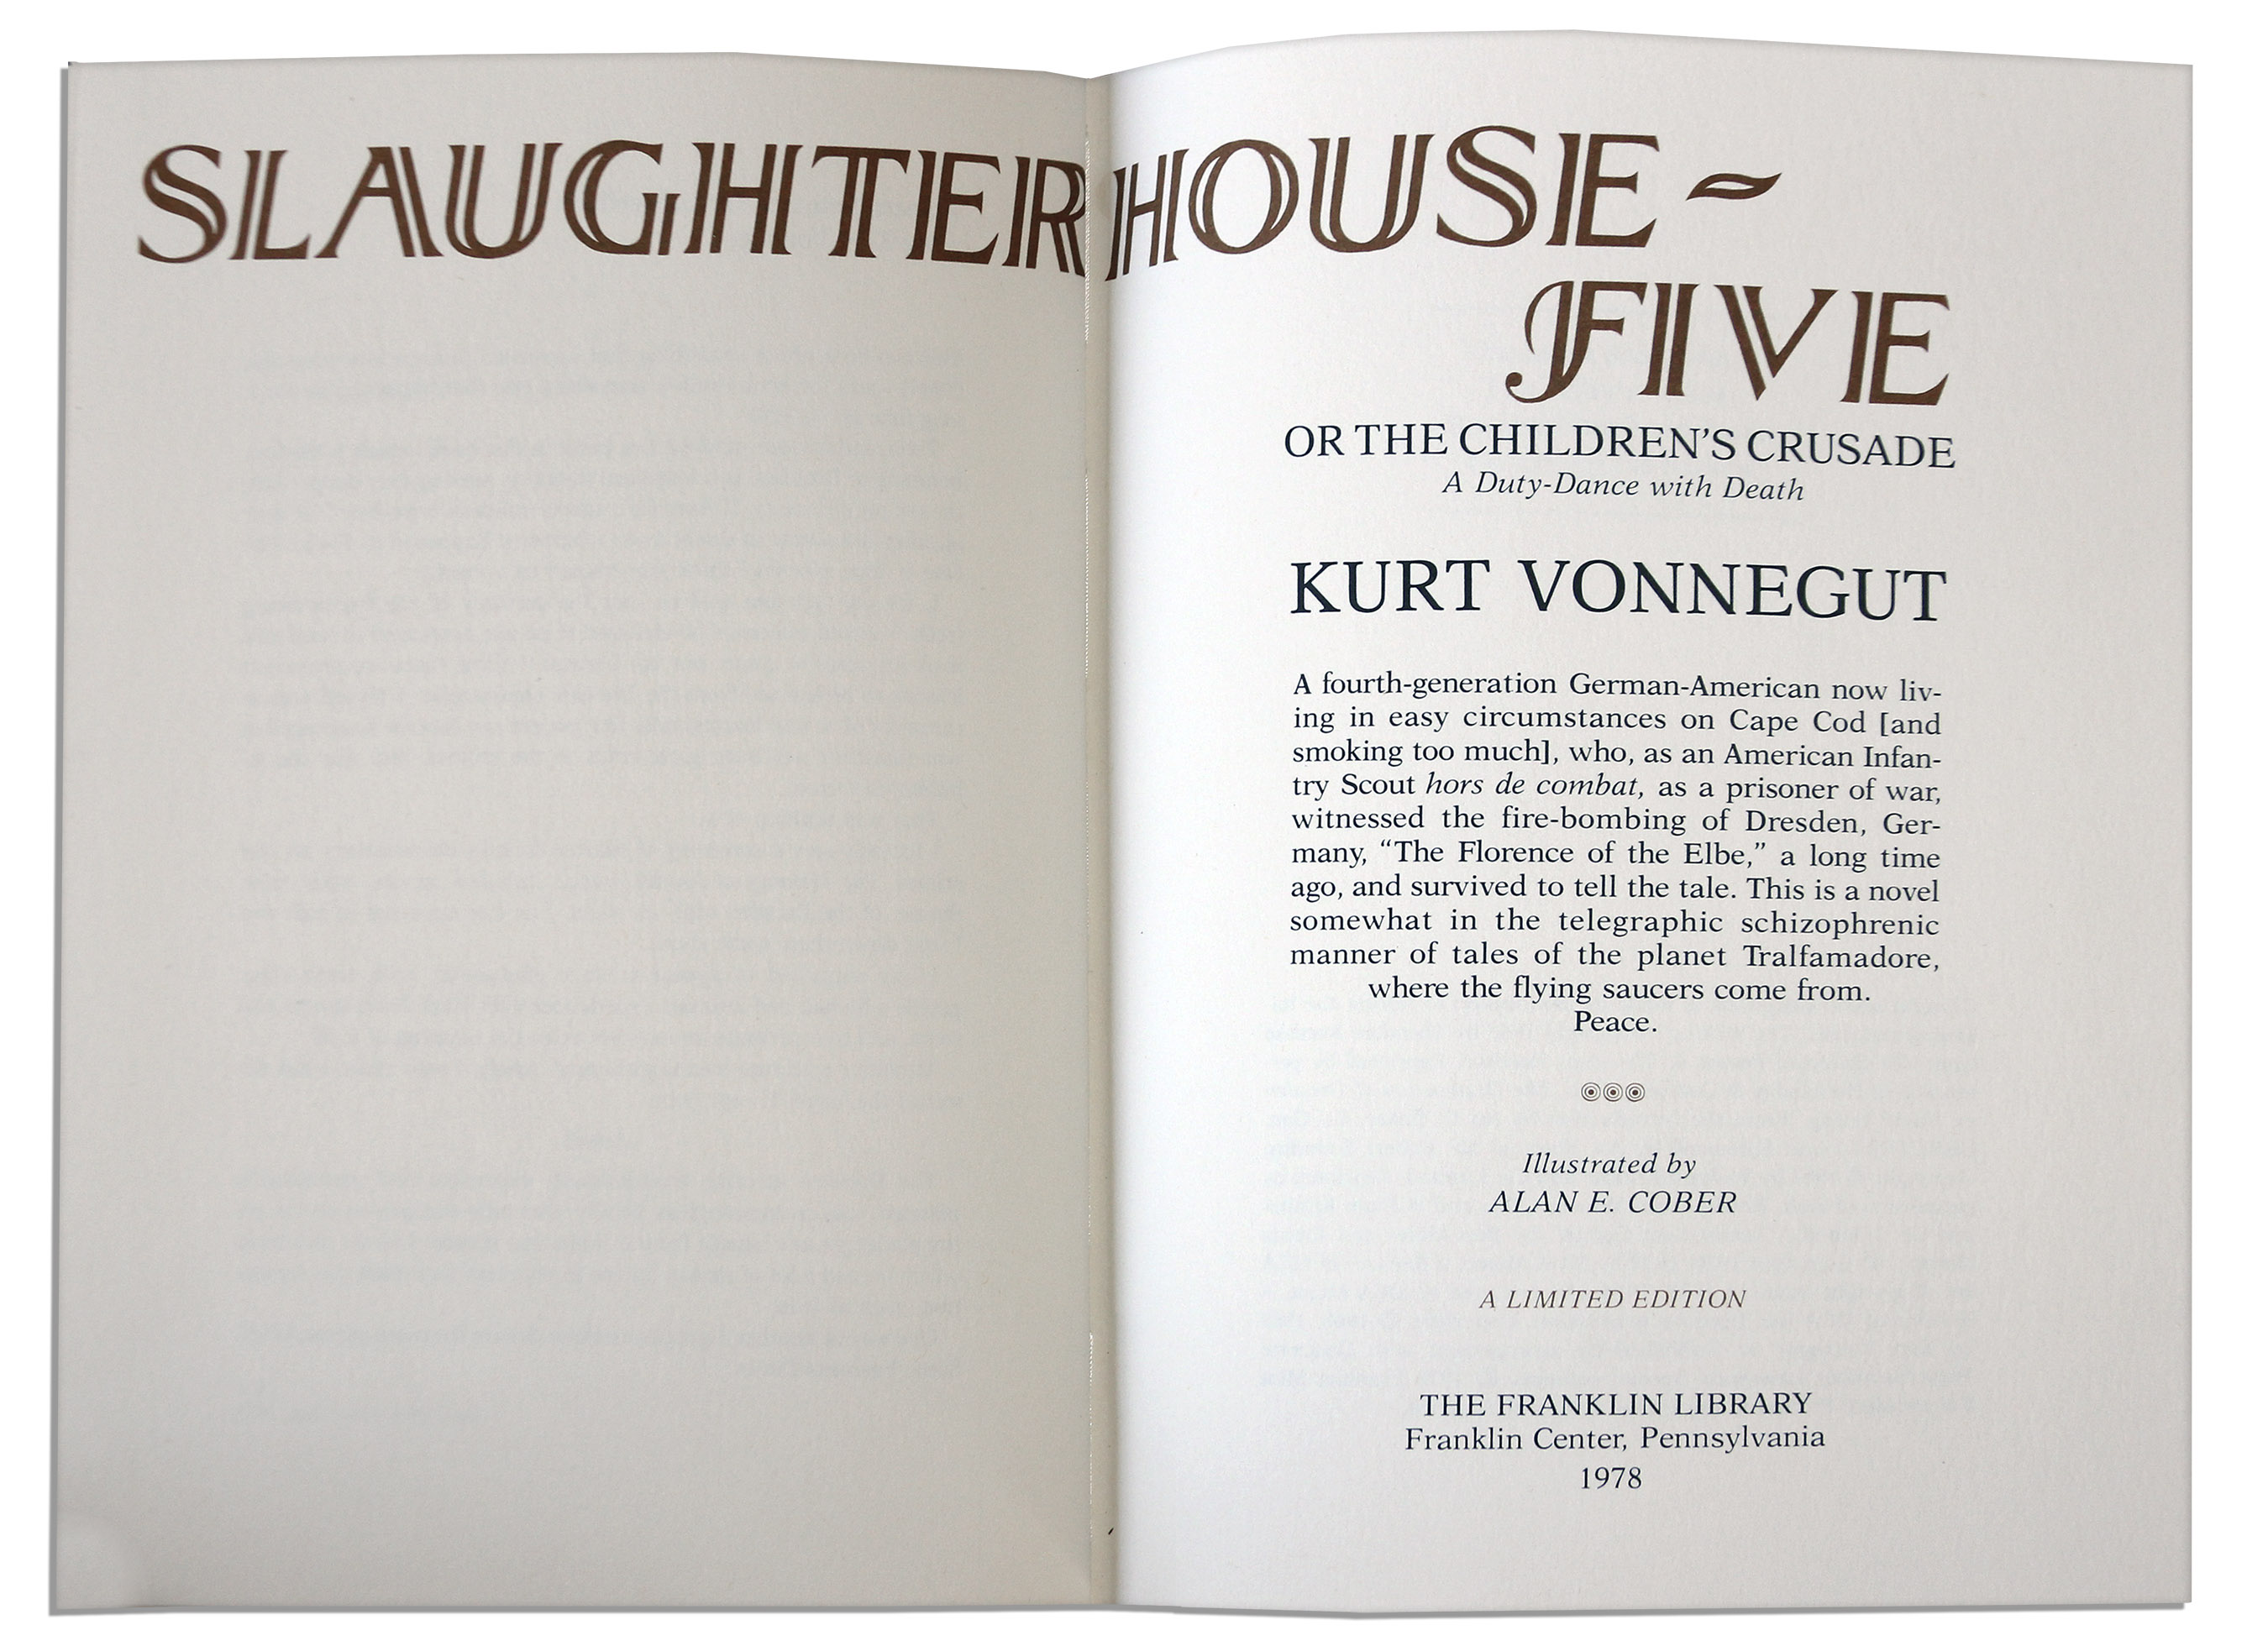 an analysis of the death of valencia pilgrim in the novel slaughterhouse five by kurt vonnegut A discussion of the slaughterhouse-five themes running throughout slaughterhouse-five kurt vonnegut death 16: billy's wife valencia dies of carbon monoxide.